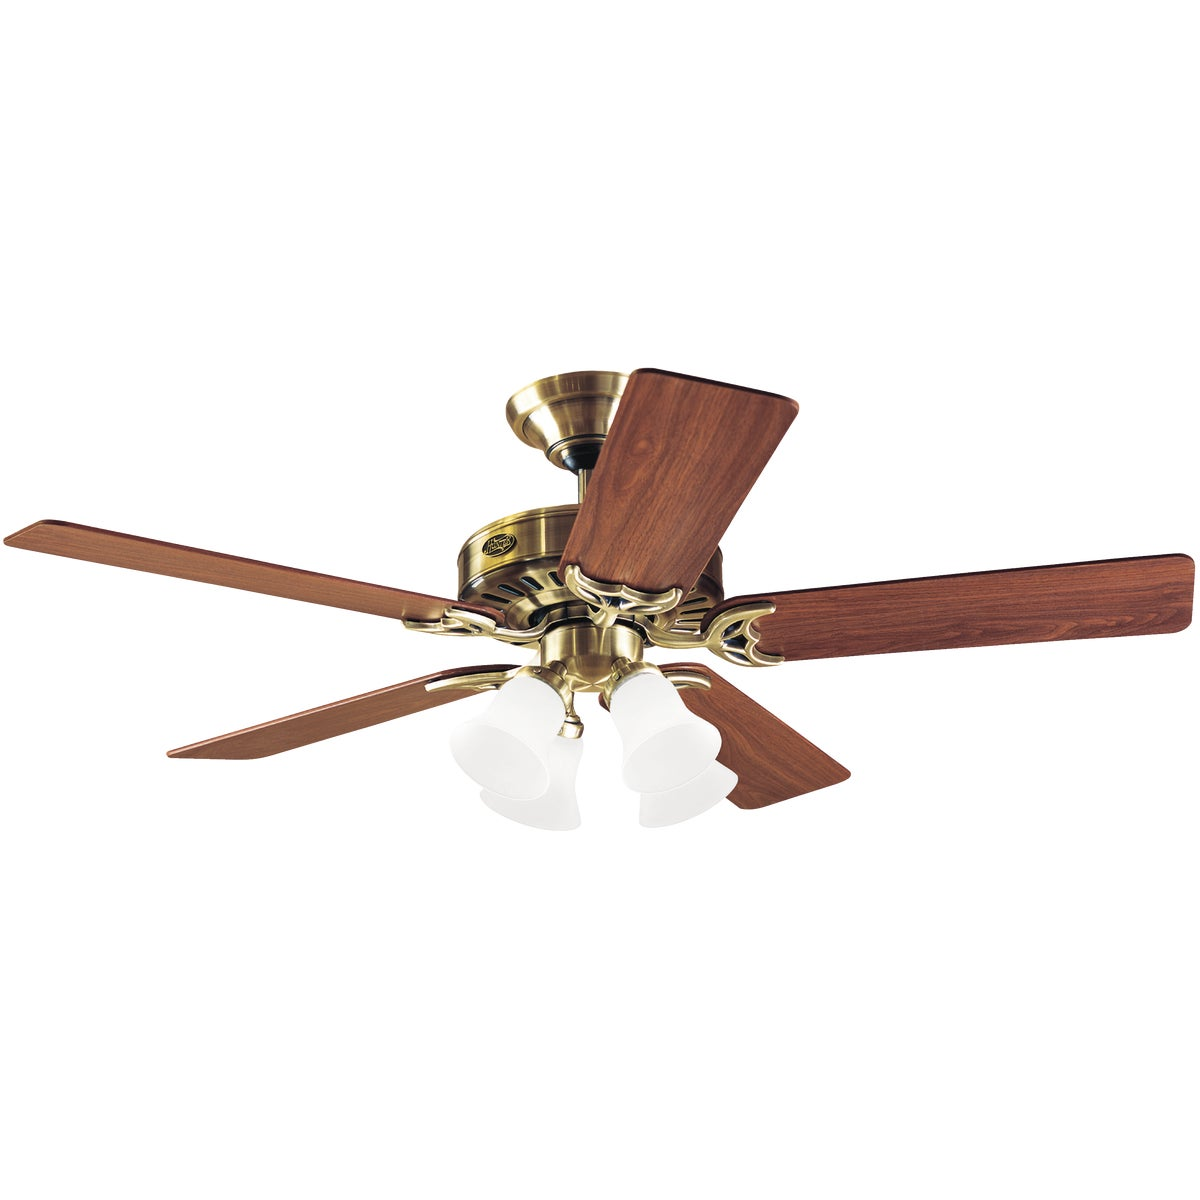 "52"" AB CEIL FAN W/LIGHT"